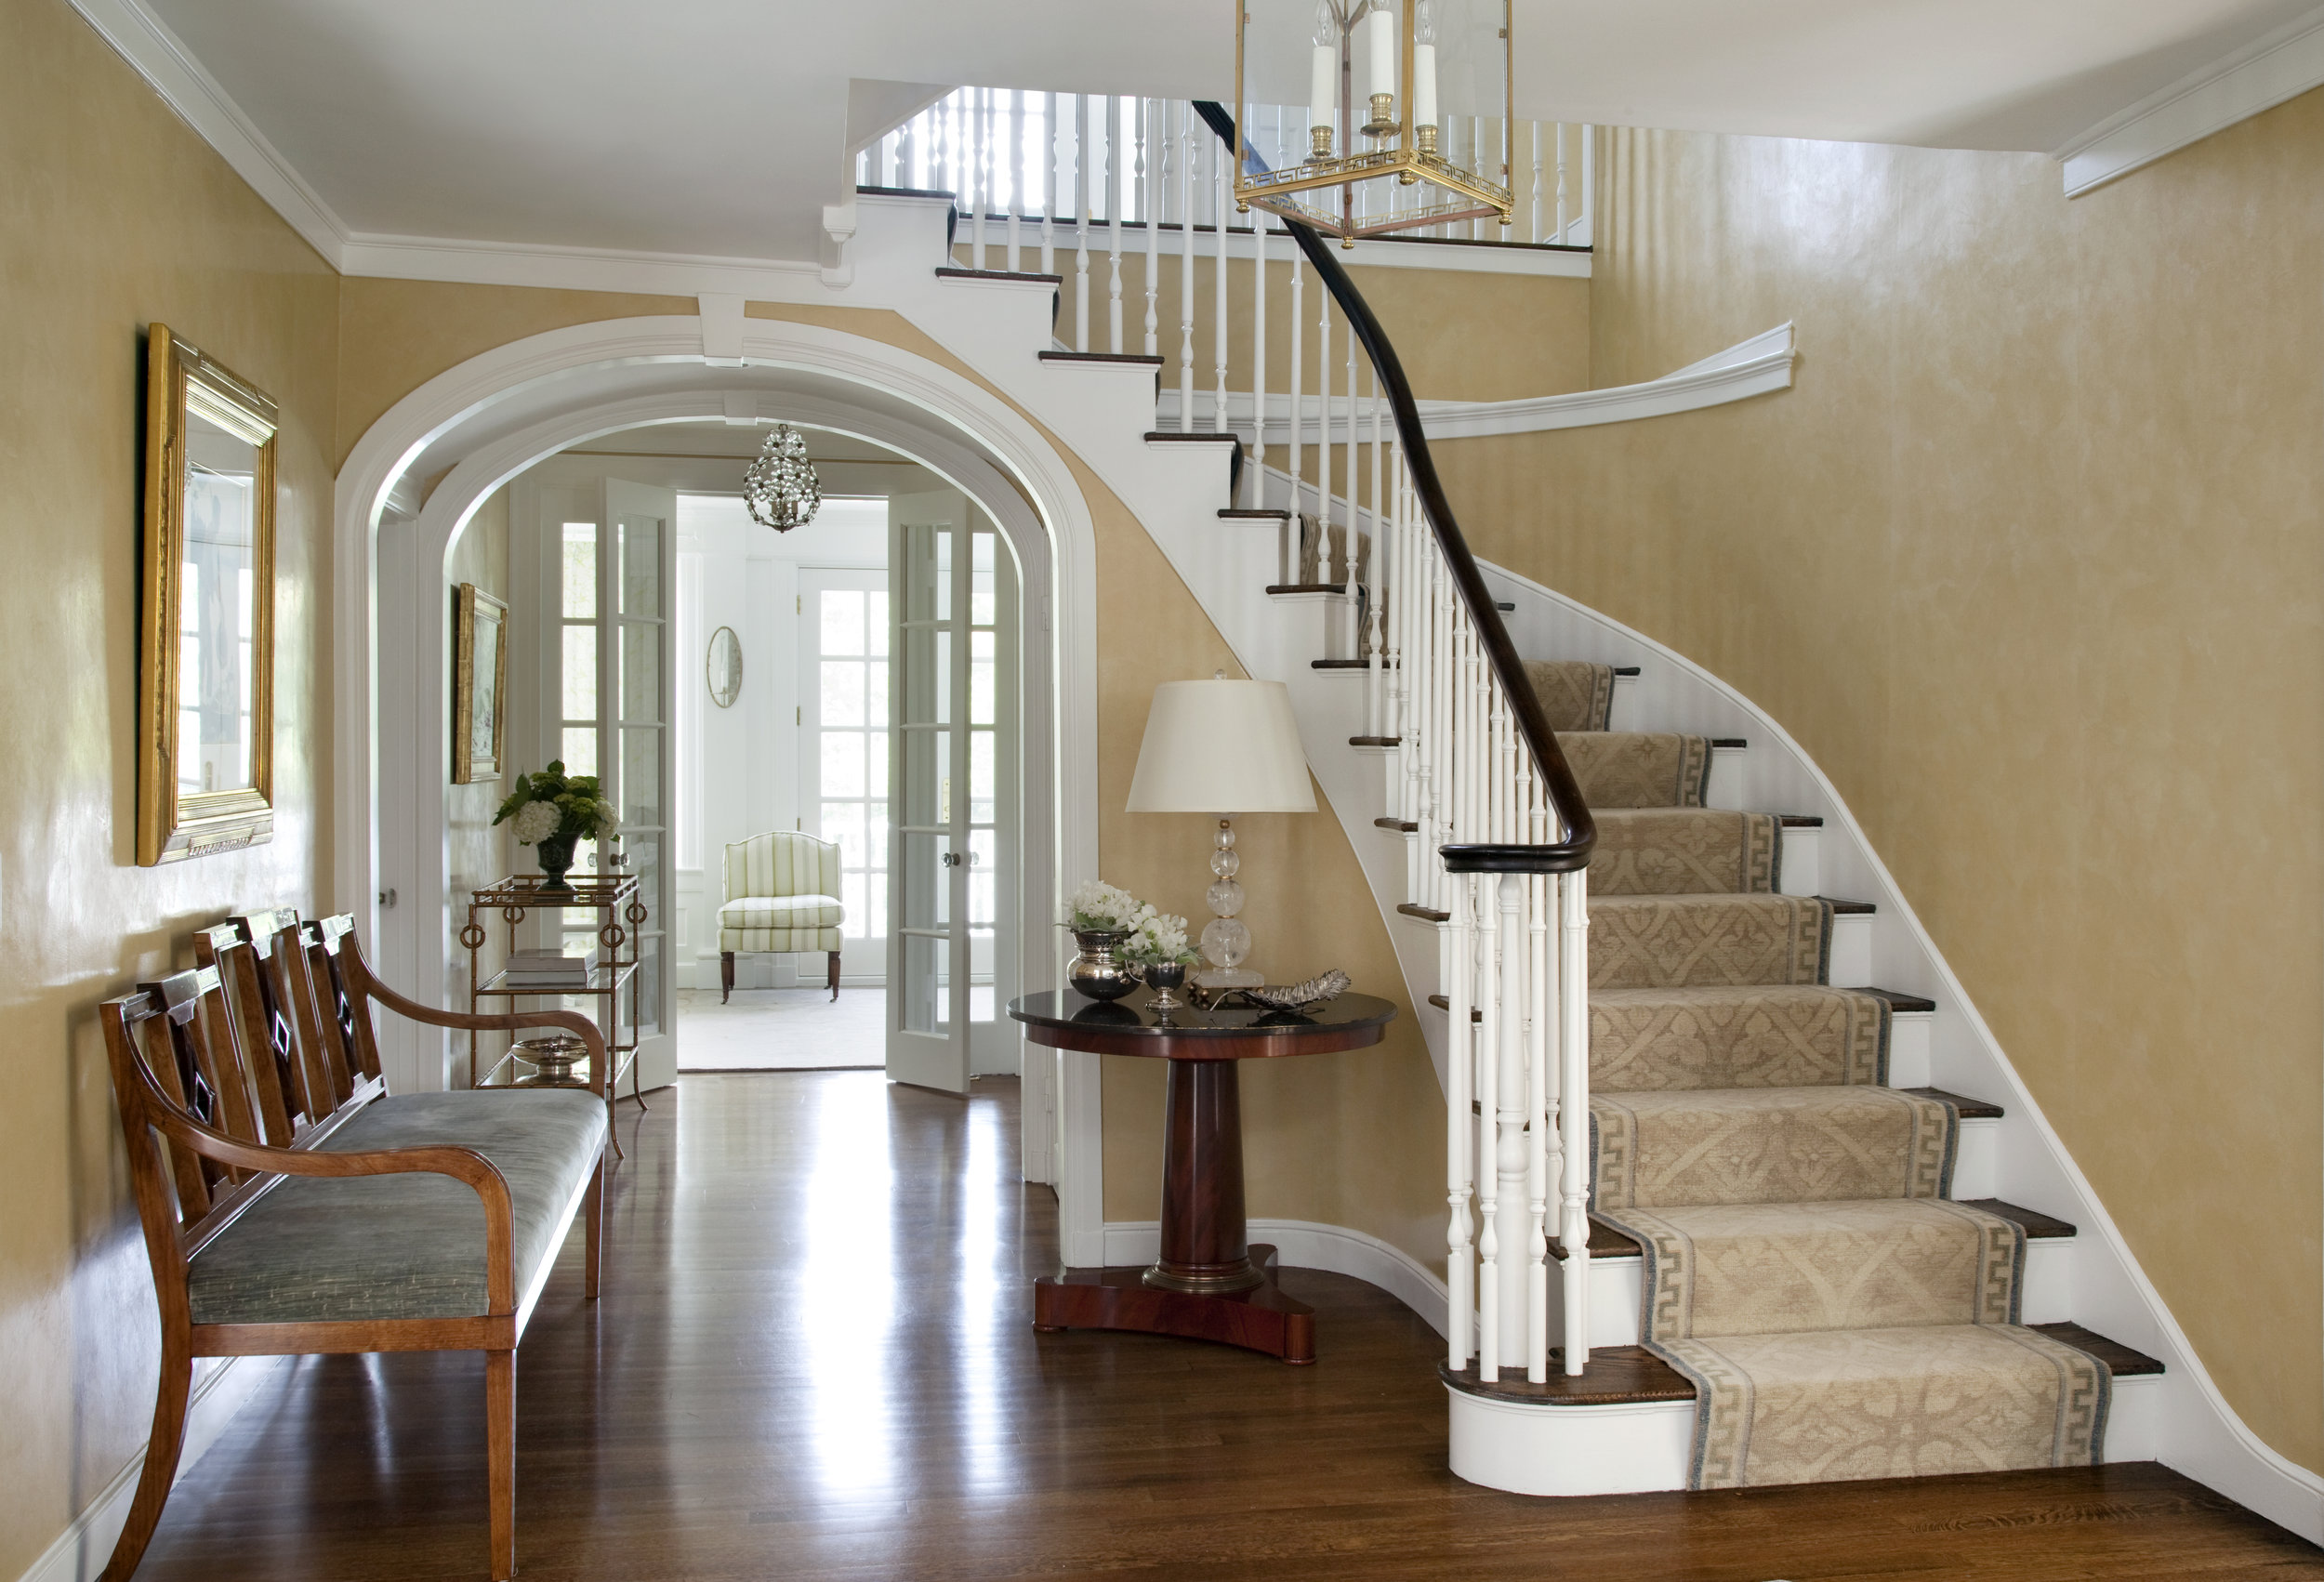 "Interiors ""Chestnut Hill Residence"" Carter & Company Interior Design"